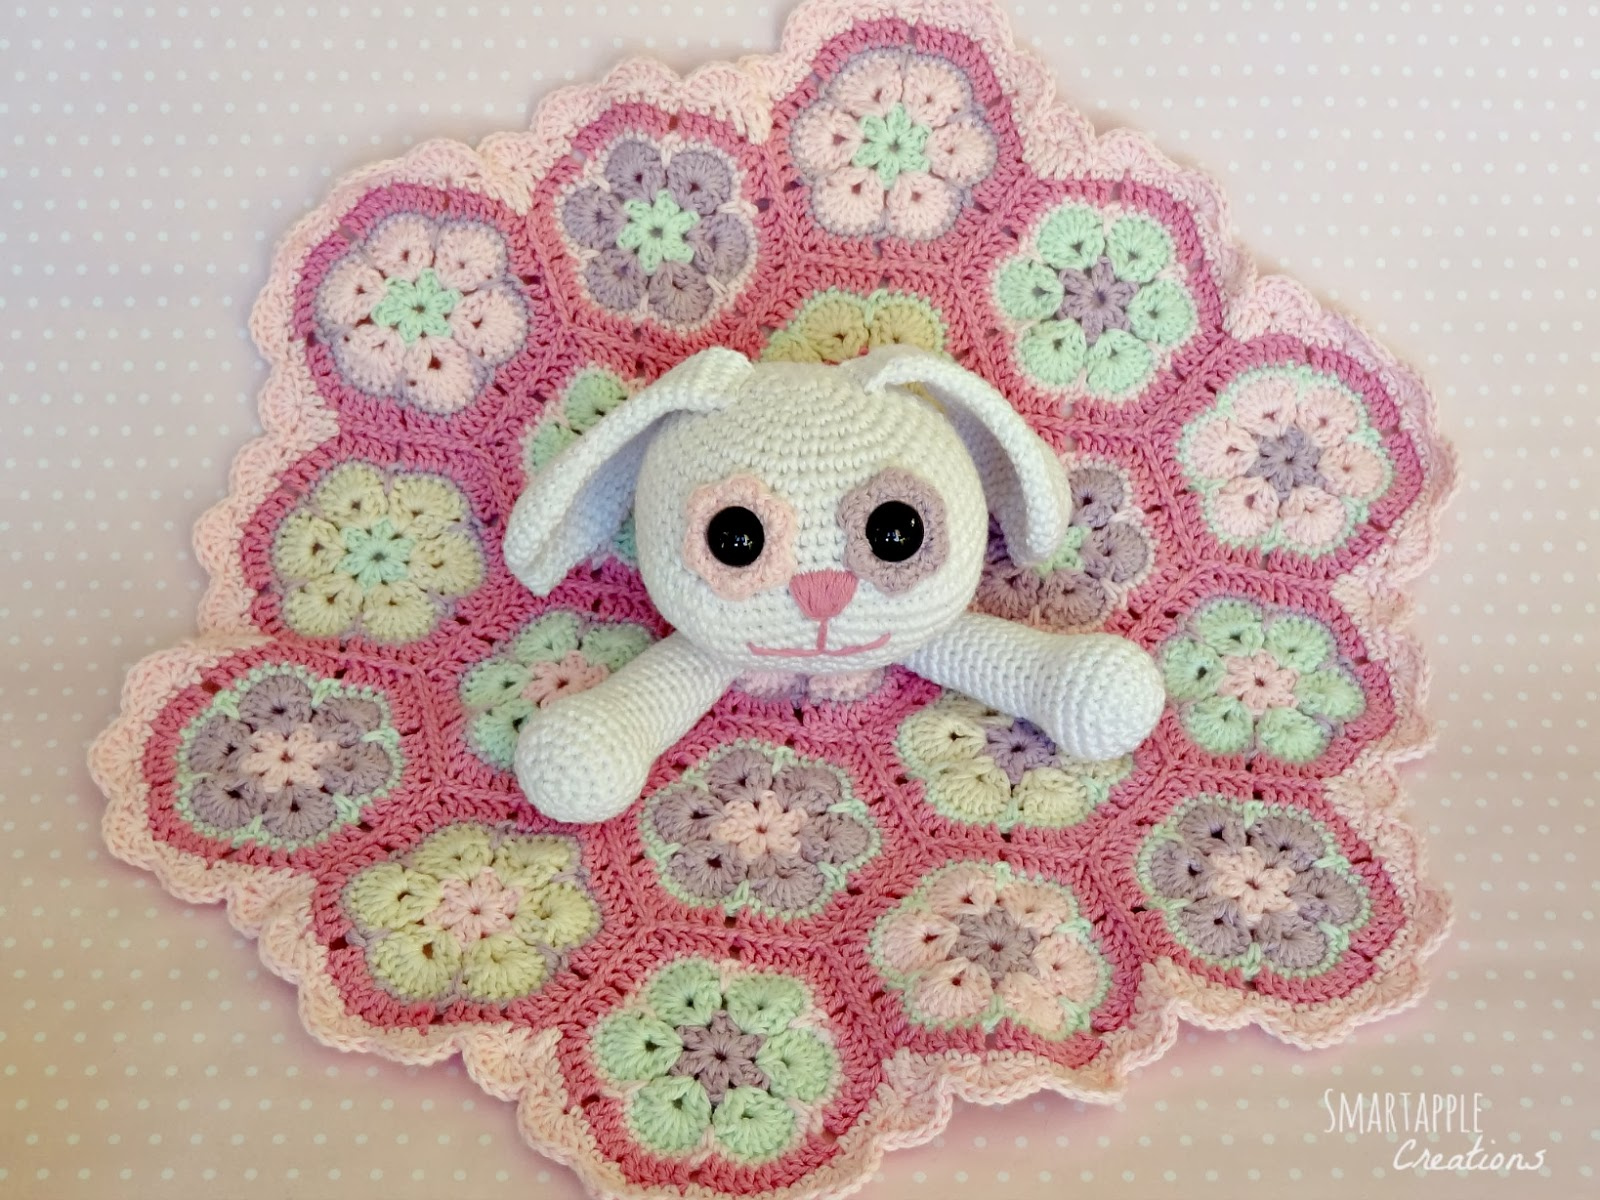 African Flower Amigurumi Free Pattern : Smartapple Creations - amigurumi and crochet: Crochet ...